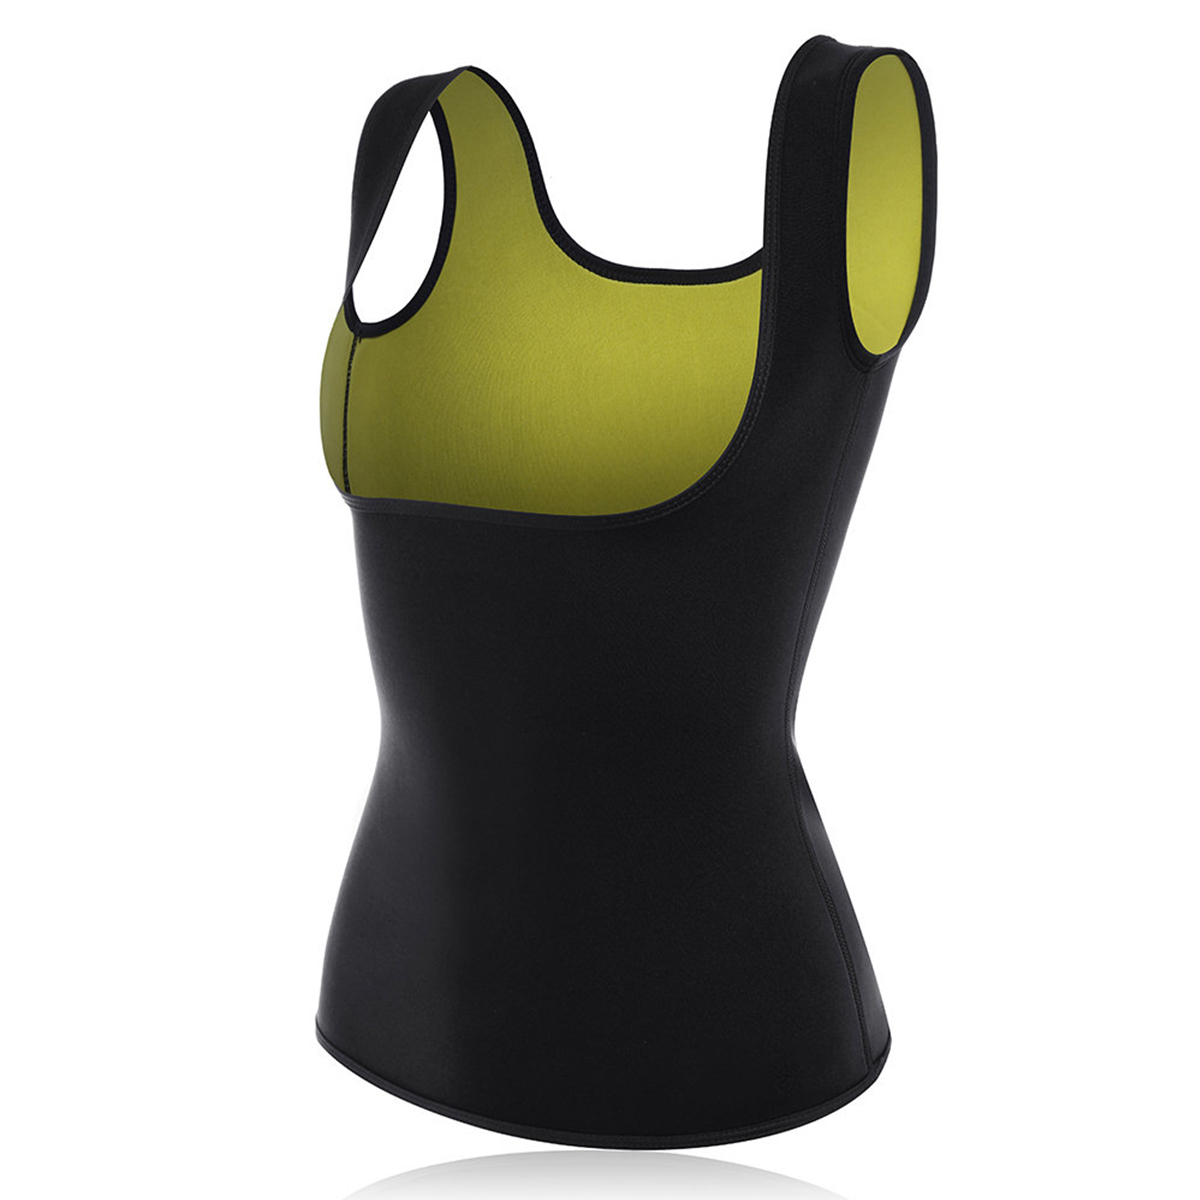 c1f8ac055a Women Slimming Vest Body Shaper Hot Thermo Sweat Neoprene Waist Trainer  Slimmer Corset